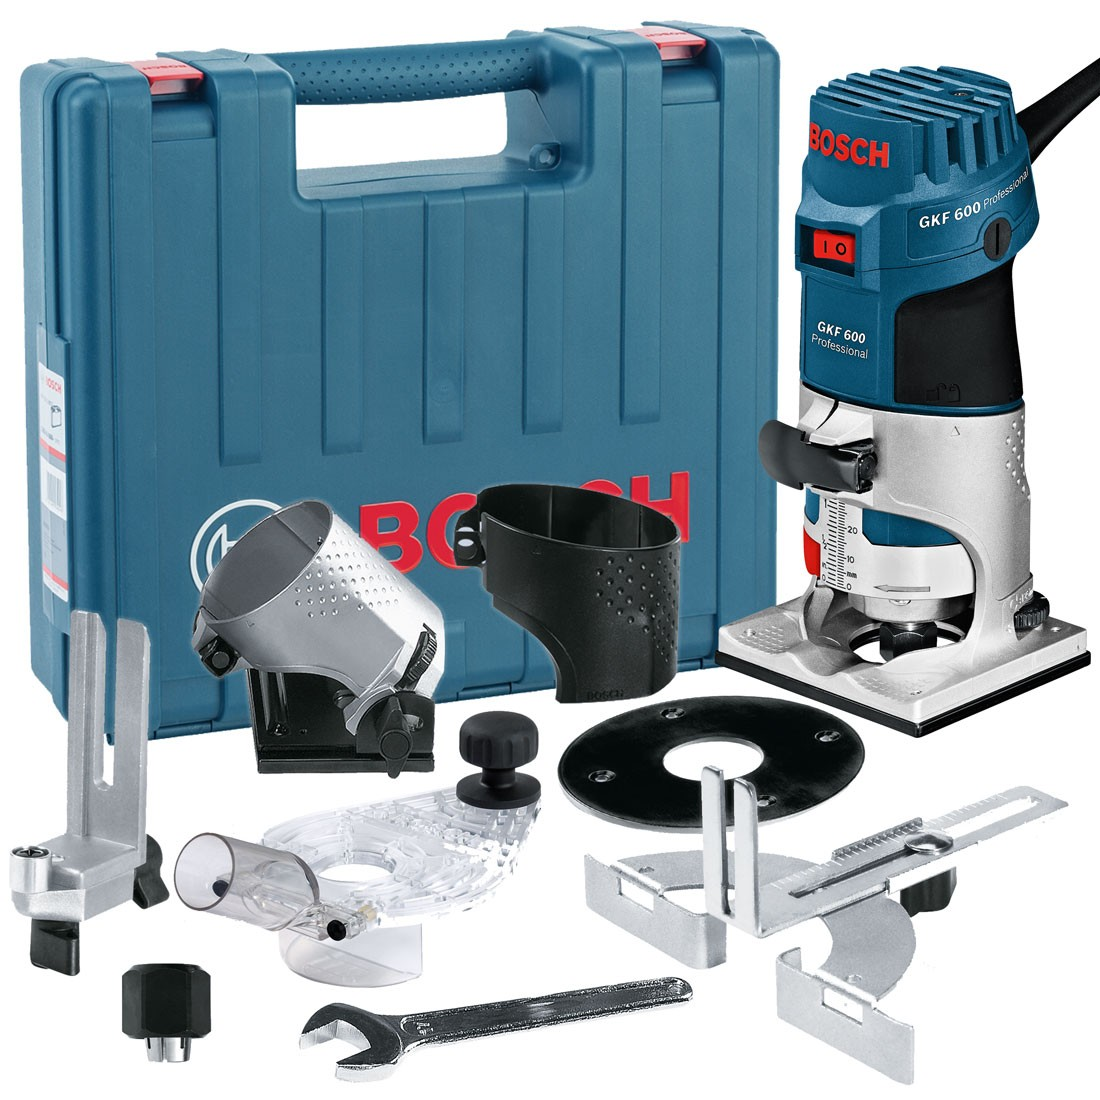 Bosch gkf 600 14 palm routerlaminate trimmer kit inc extra bases bosch gkf 600 14 palm routerlaminate trimmer kit inc extra bases powertool world greentooth Gallery